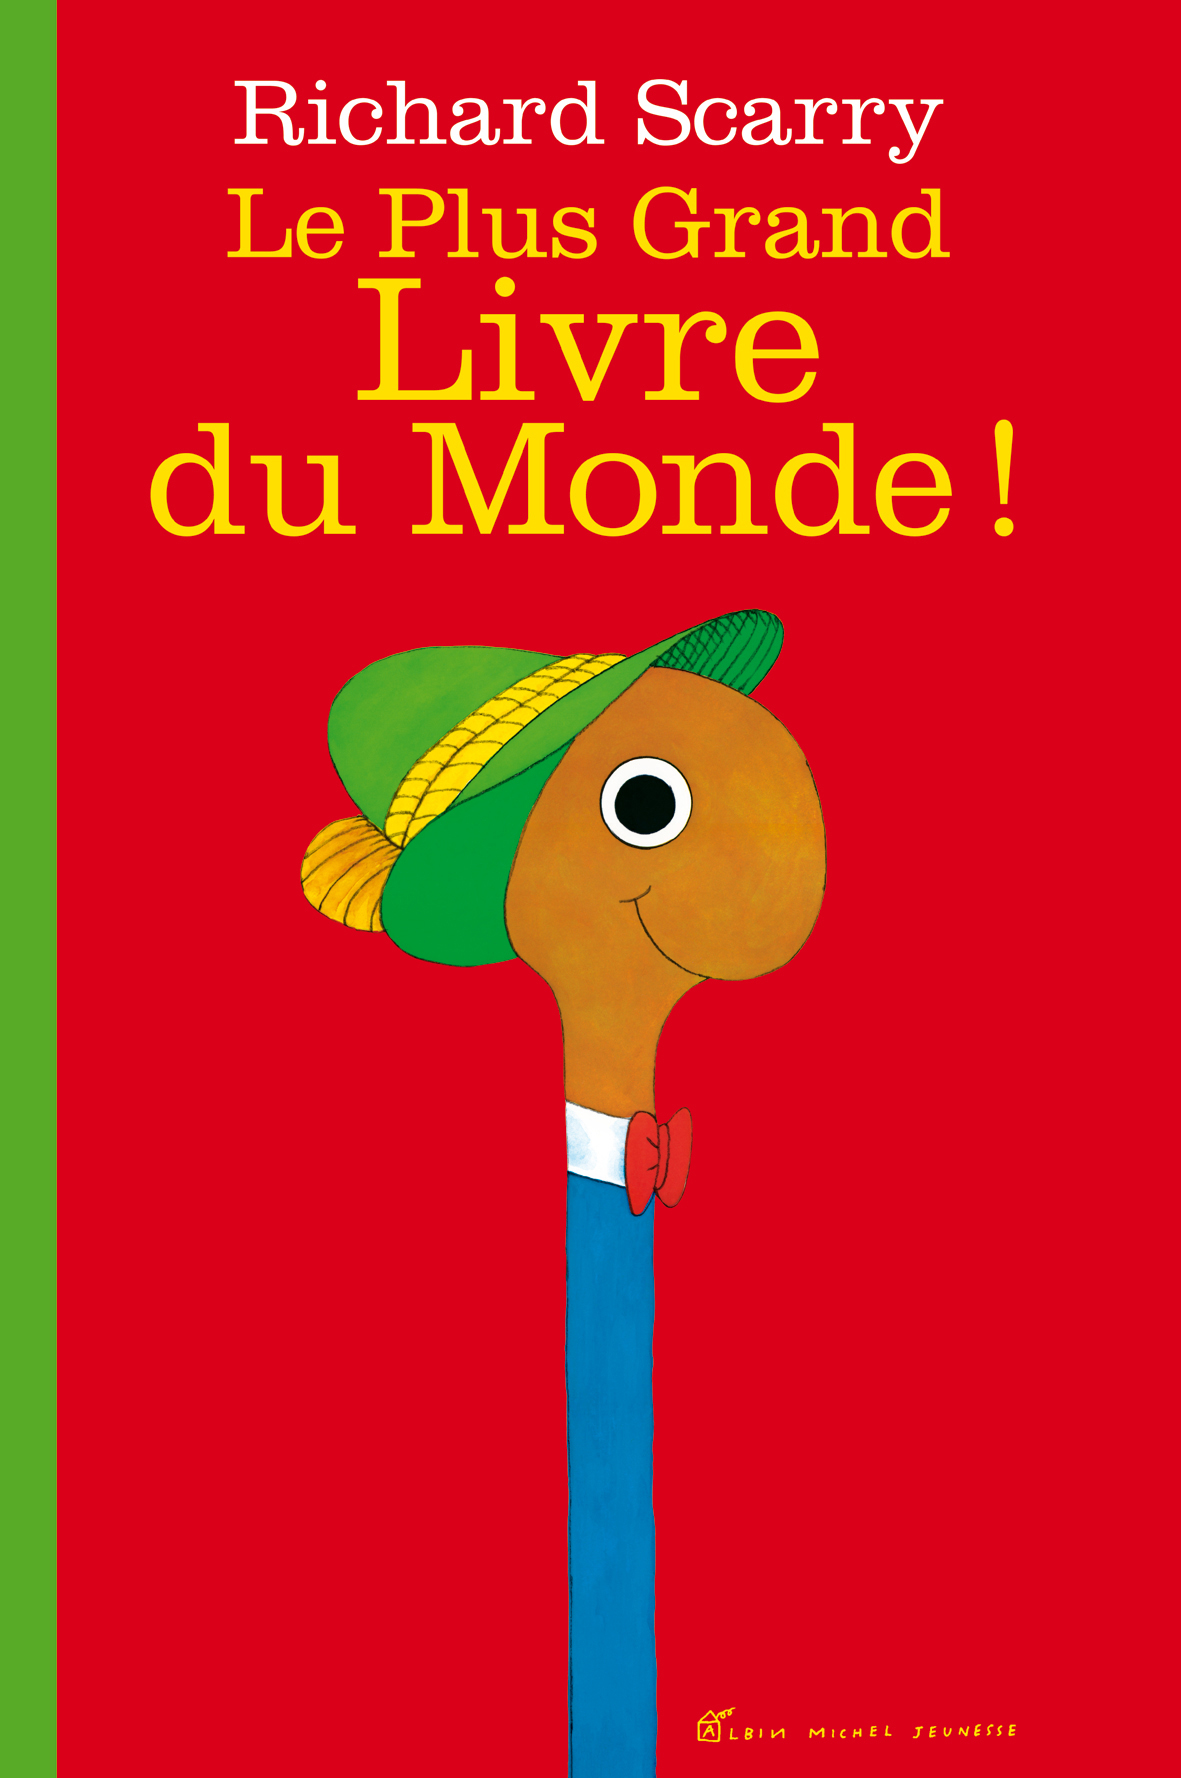 Richard Scarry La Sardine A Lire